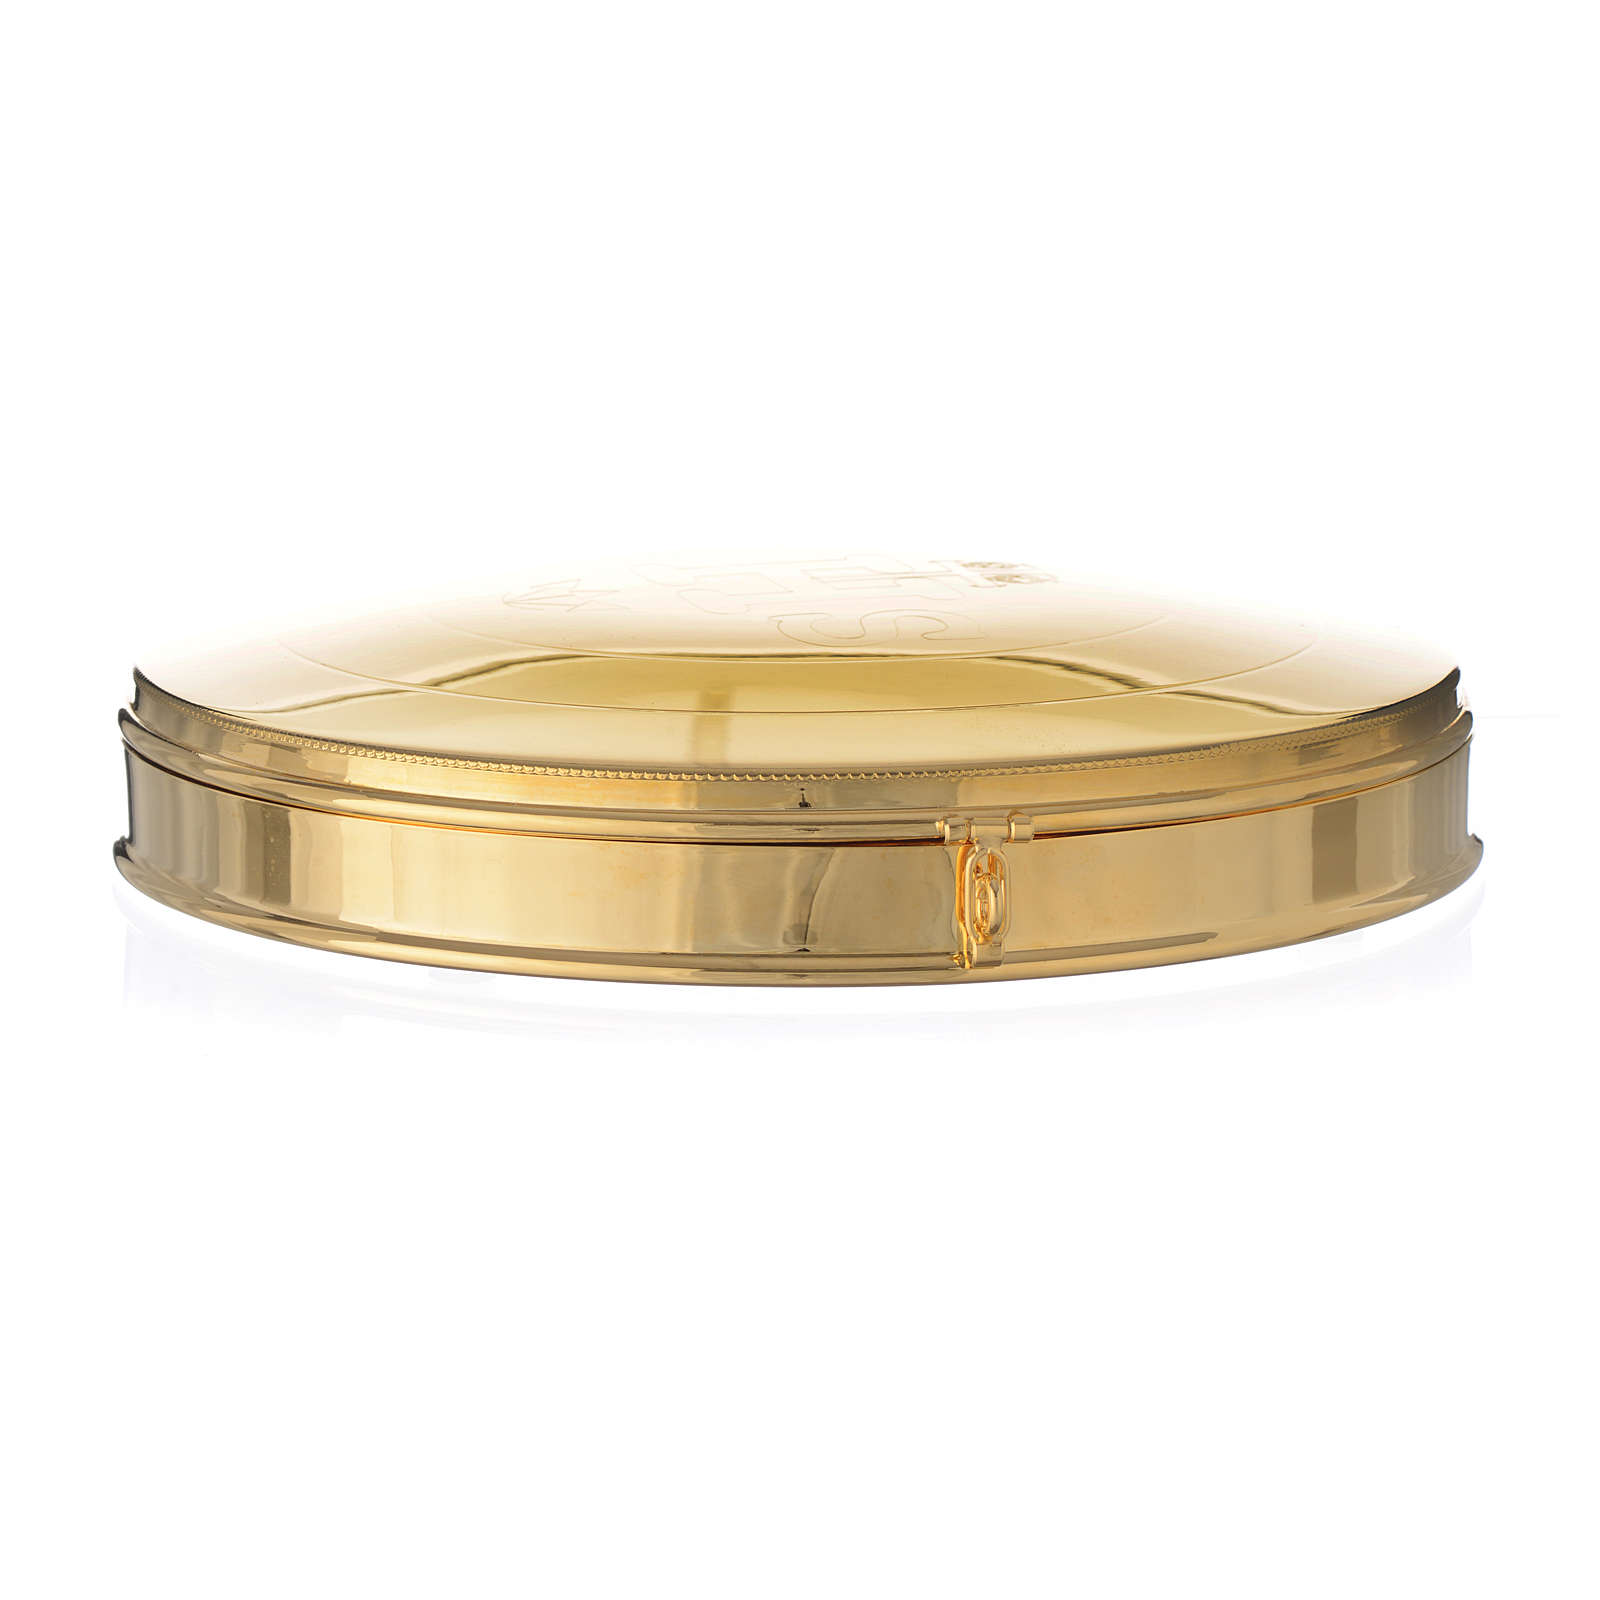 Pyx for big host in gold plated brass 21.5cm 3